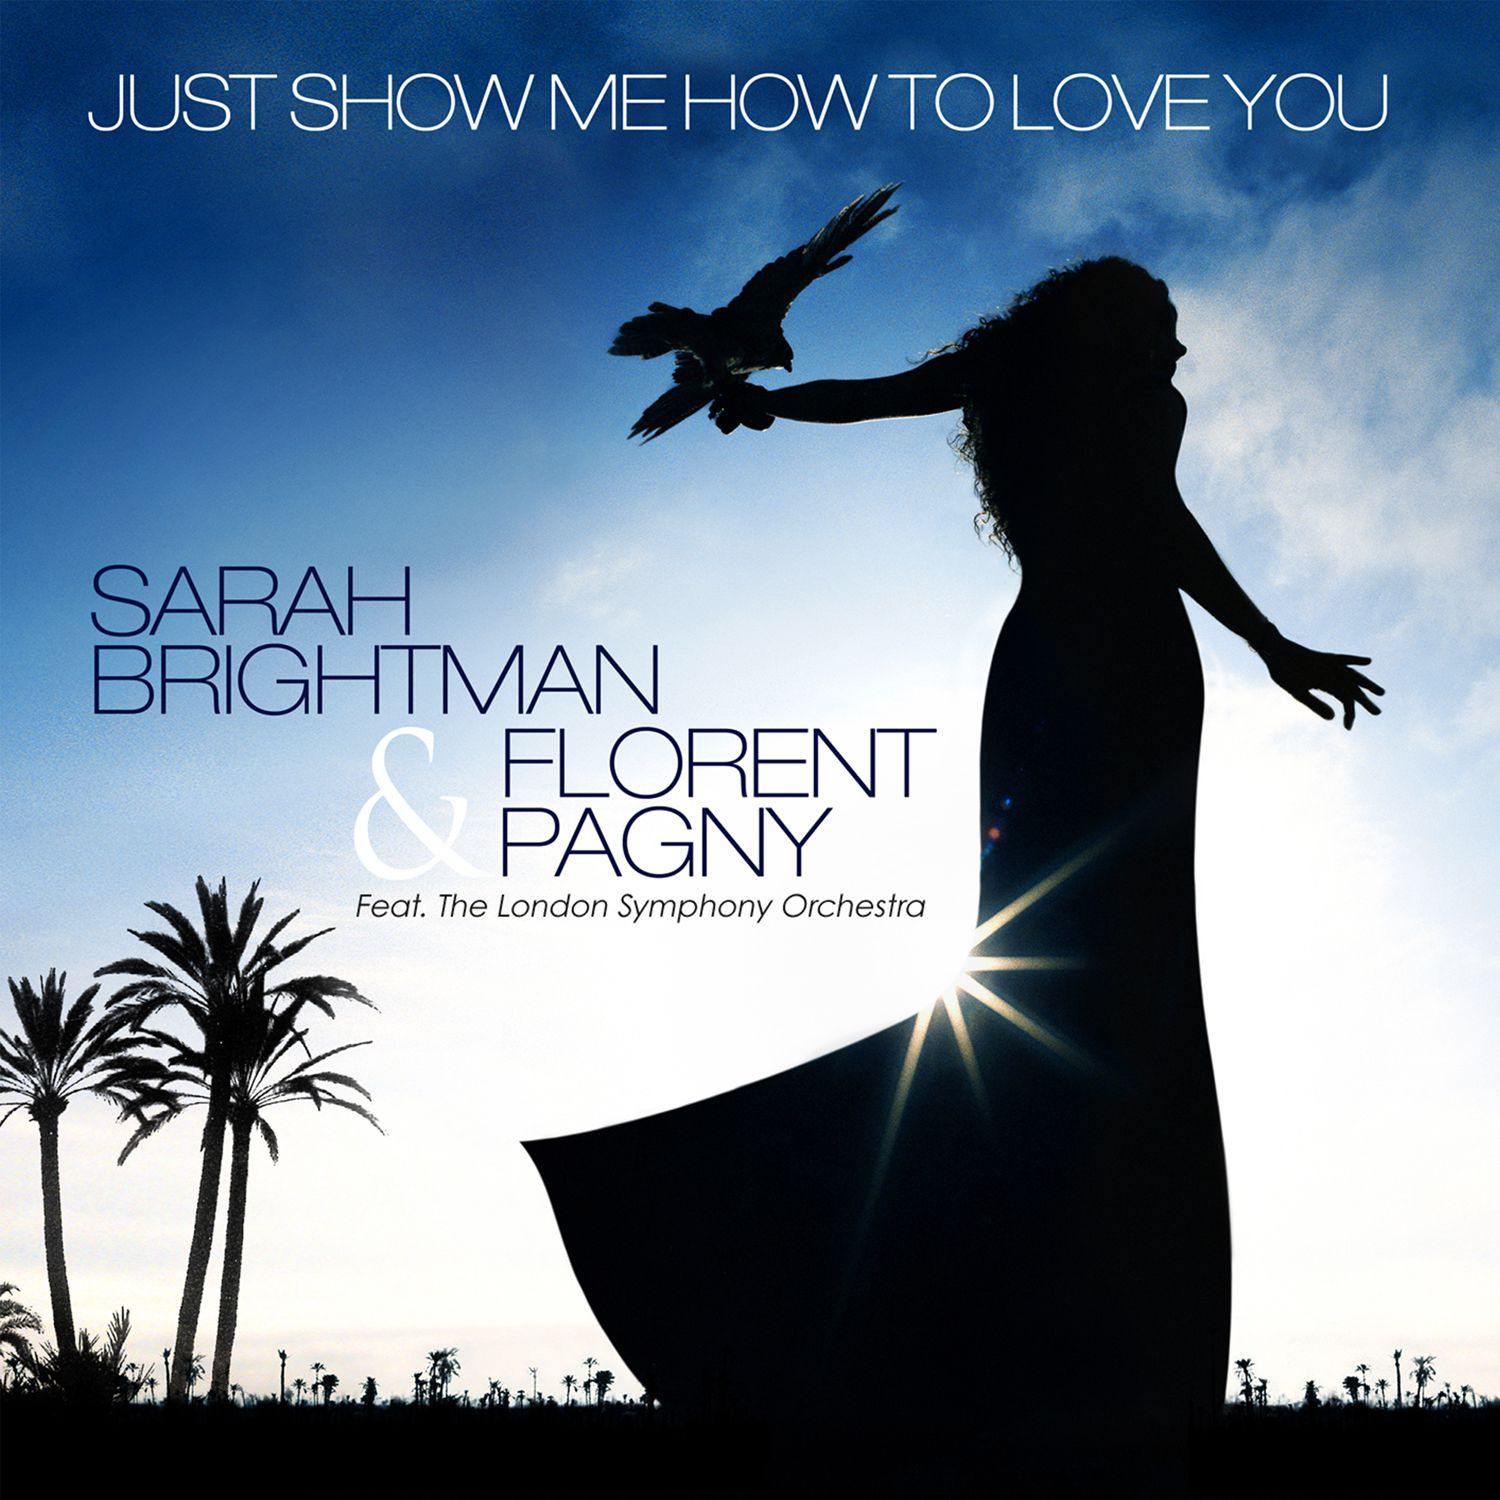 Sarah Brightman - Just Show Me How to Love You, Florent Pagny